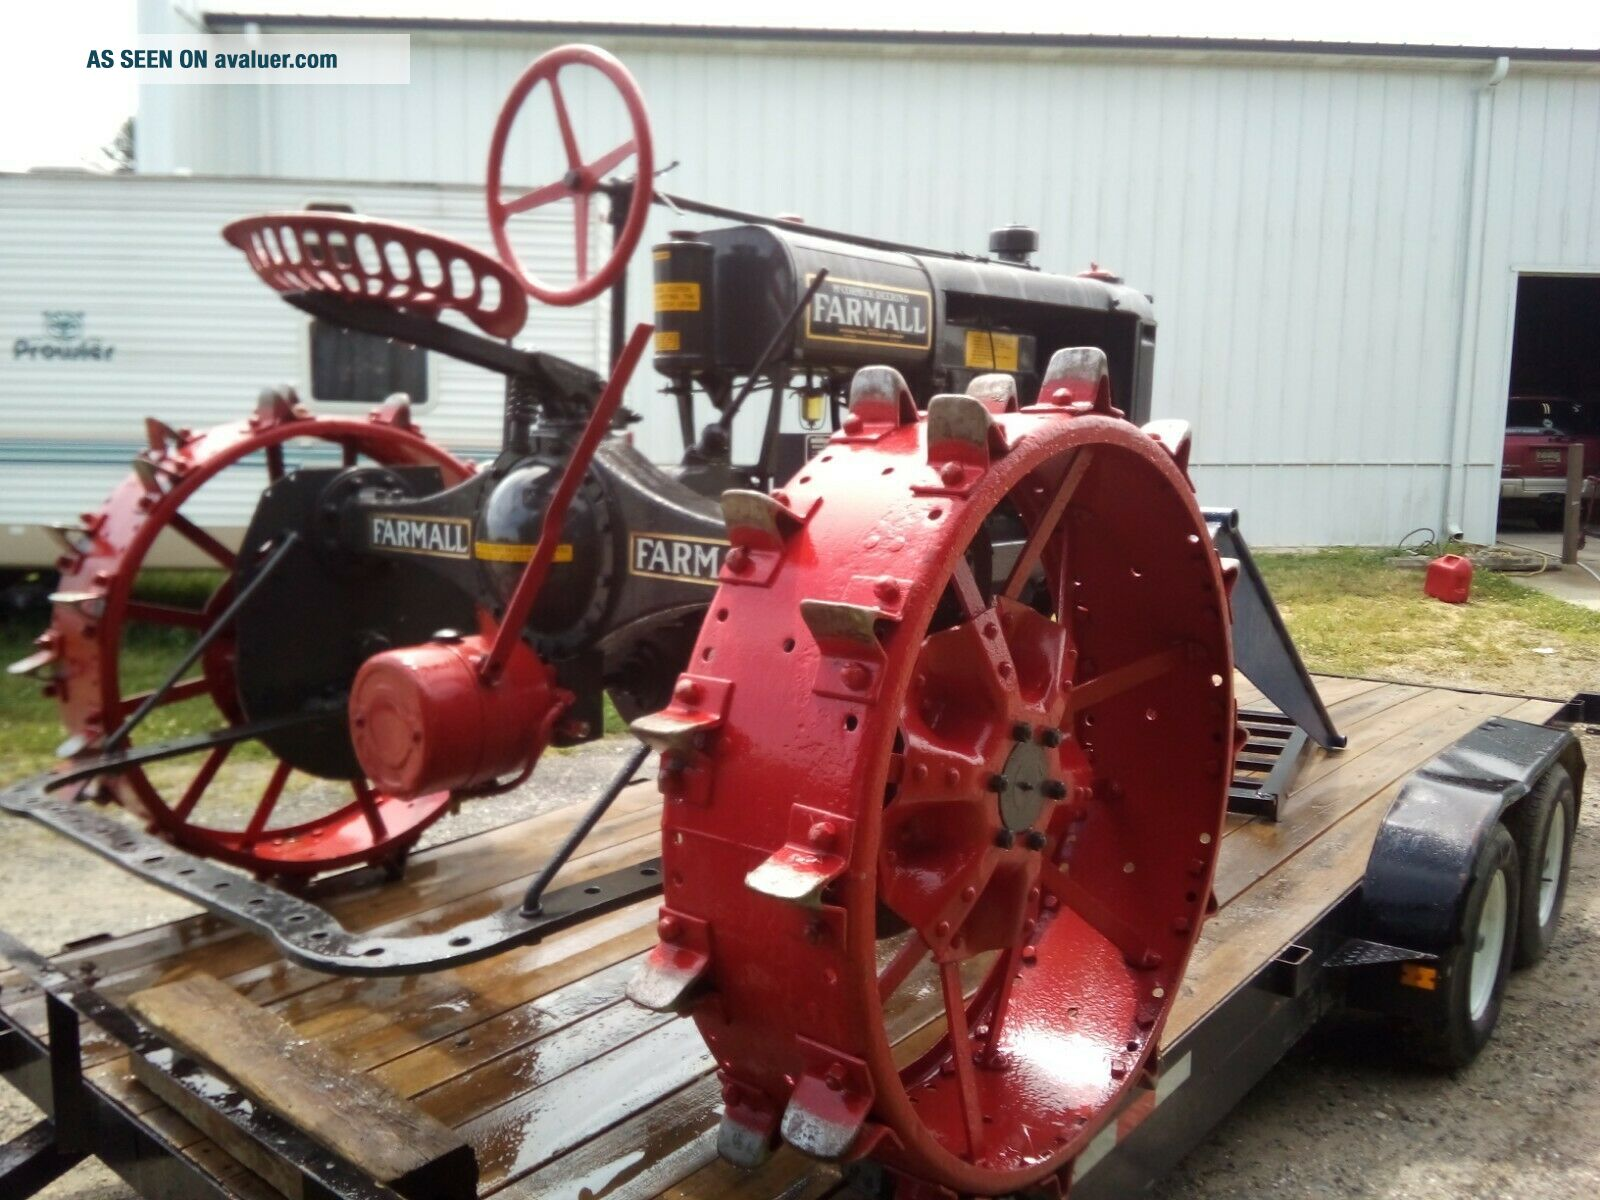 1930 Farmall Tractor Gorgeous Vintage Includes Front loader